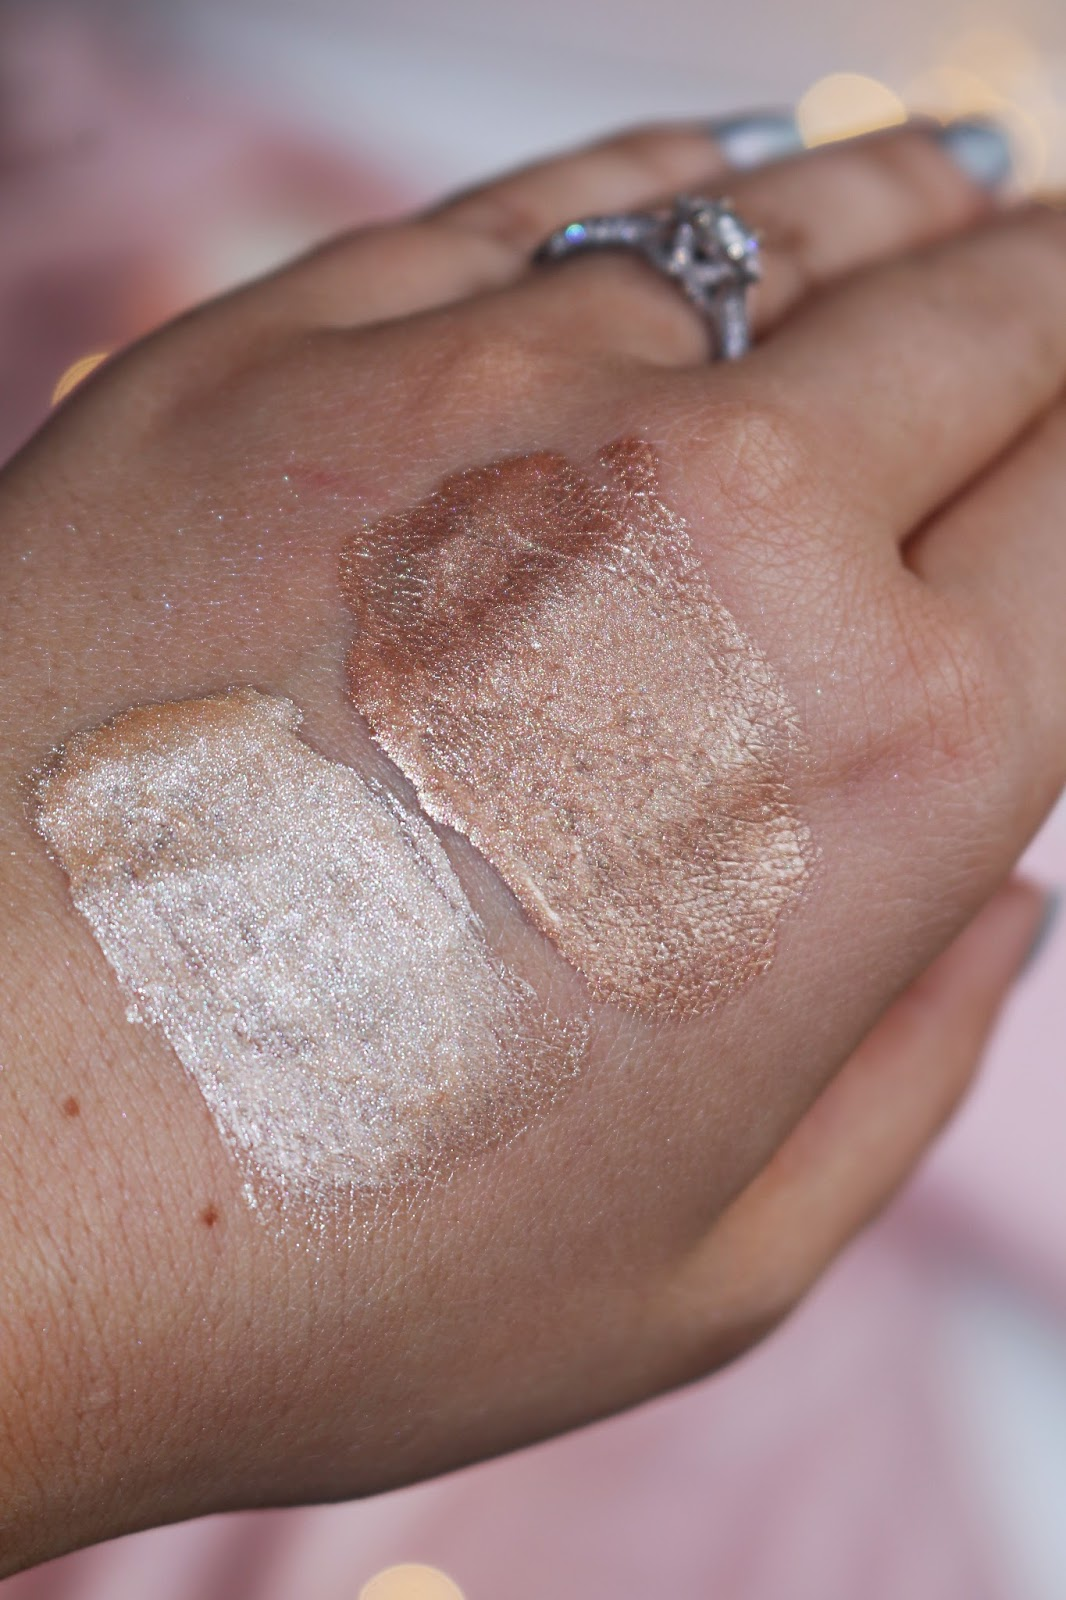 Barry M Liquid Chrome Highlighter Drops, Barry M new highlighter, Barry M, liquid highlighter, barry m chrome highlighter drops review, Beauty, Drugstore, Highlighters, Make Up, Barry M Liquid Chrome Highlighter Drops Swatches